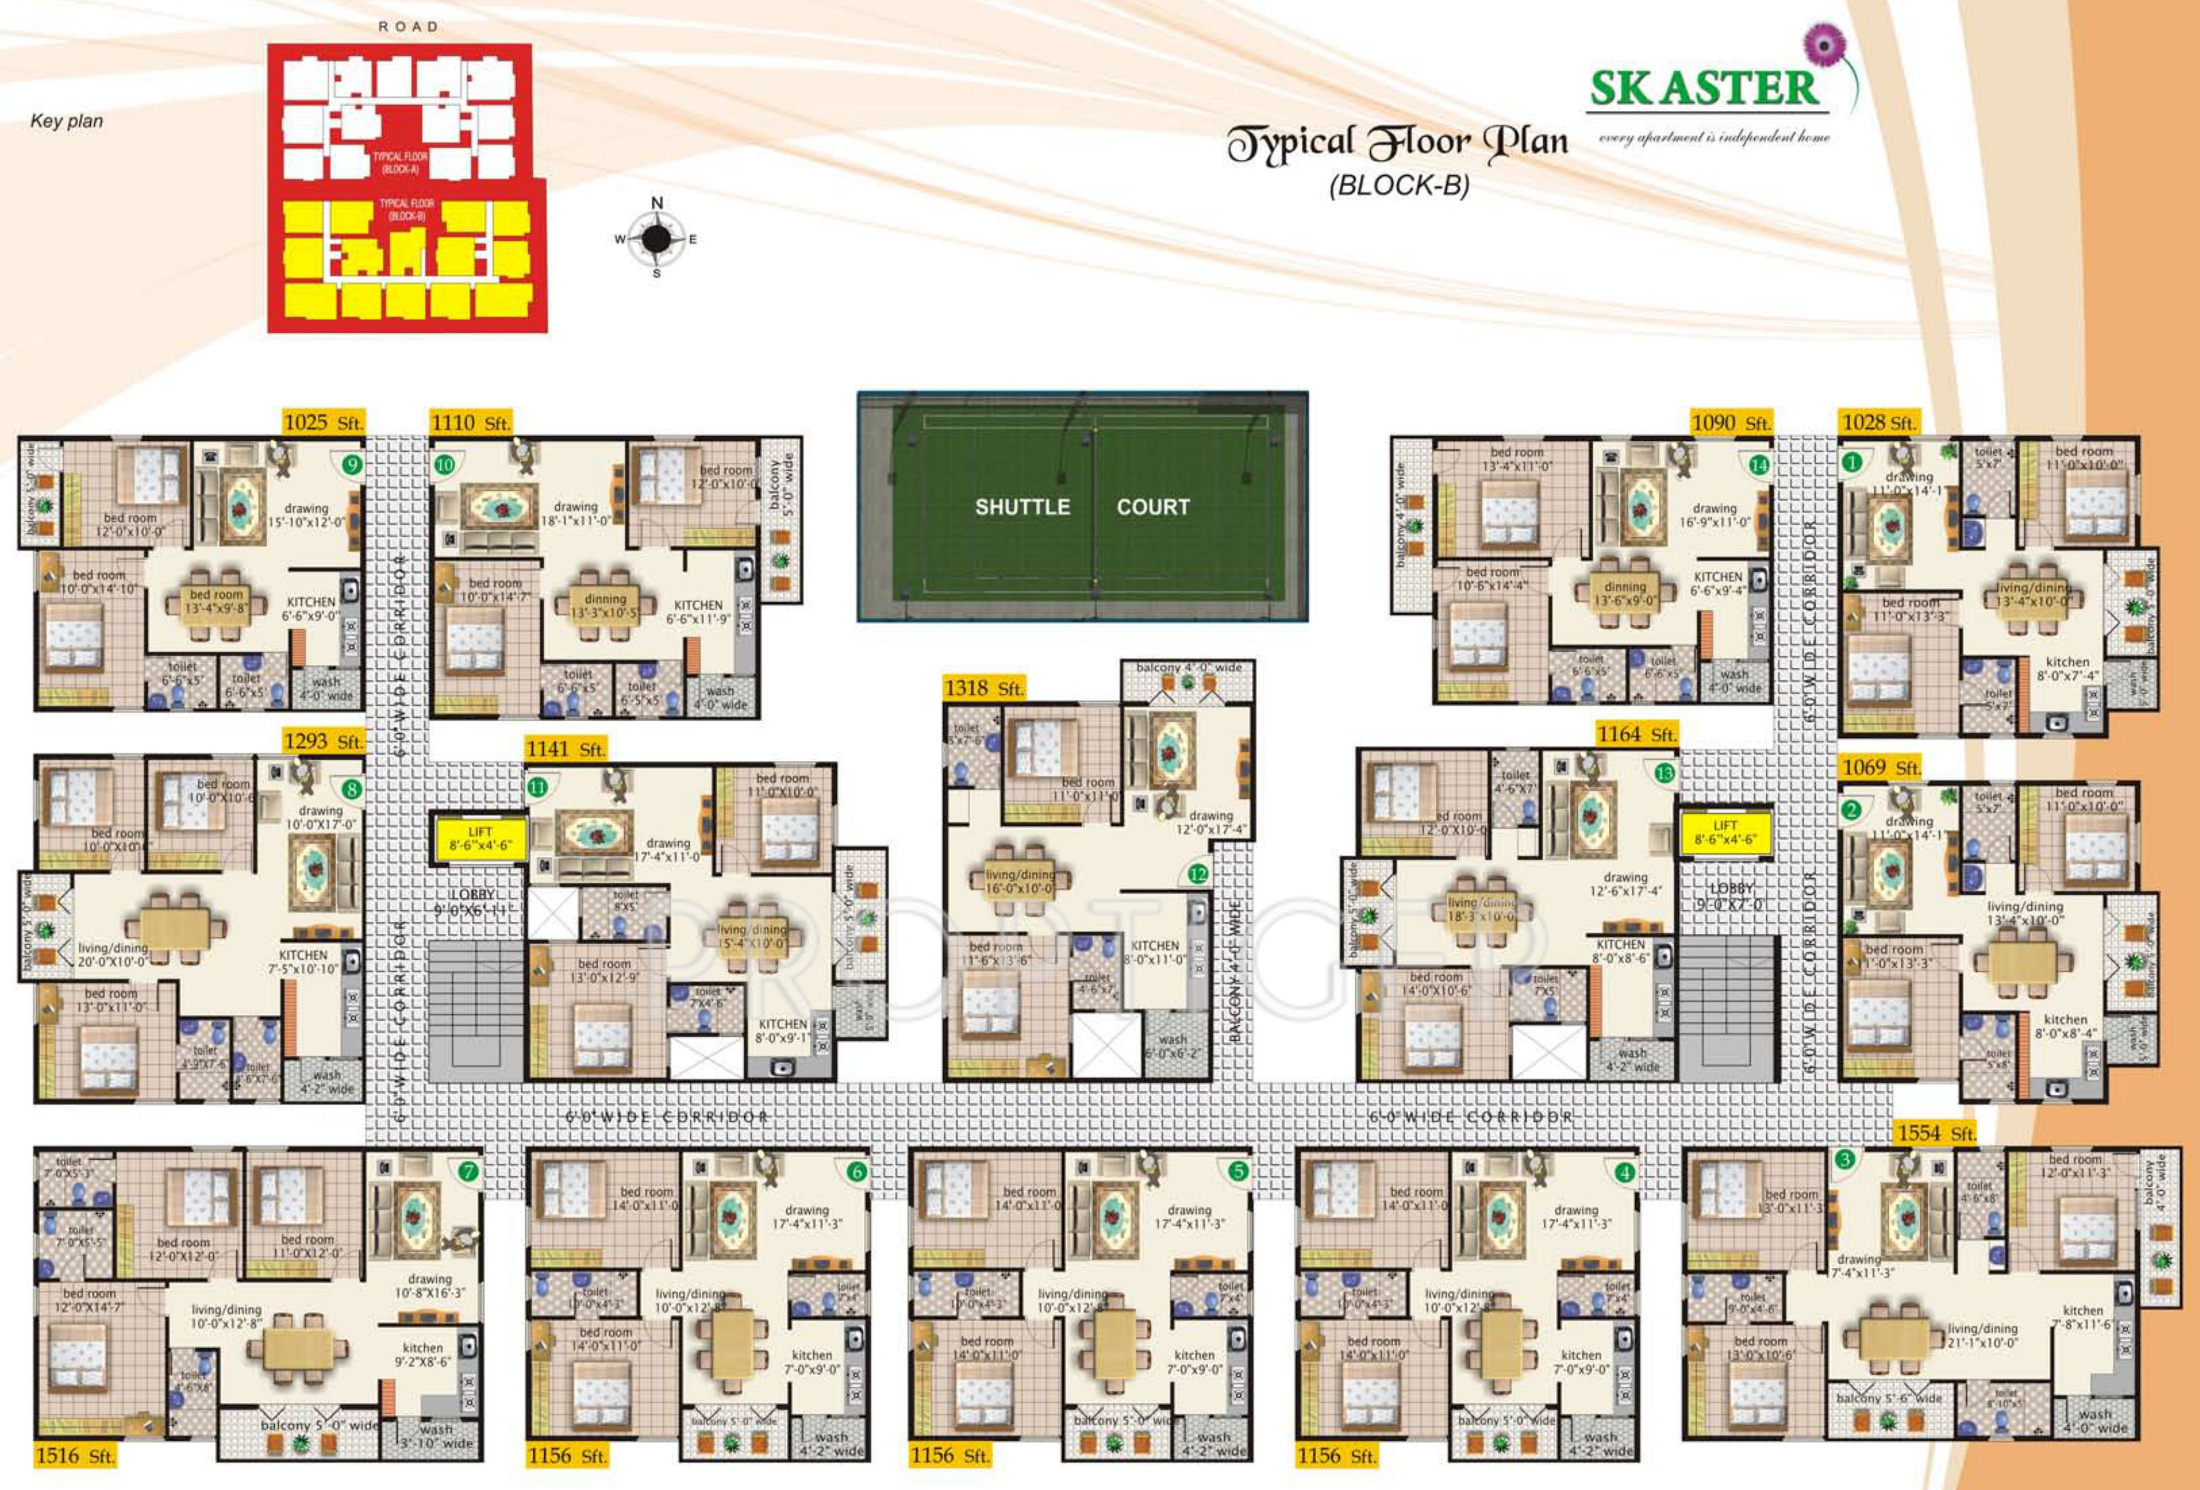 S K 1025 sq ft 2 bhk 2t apartment for sale in s k projects aster electronic city phase 1 bangalore